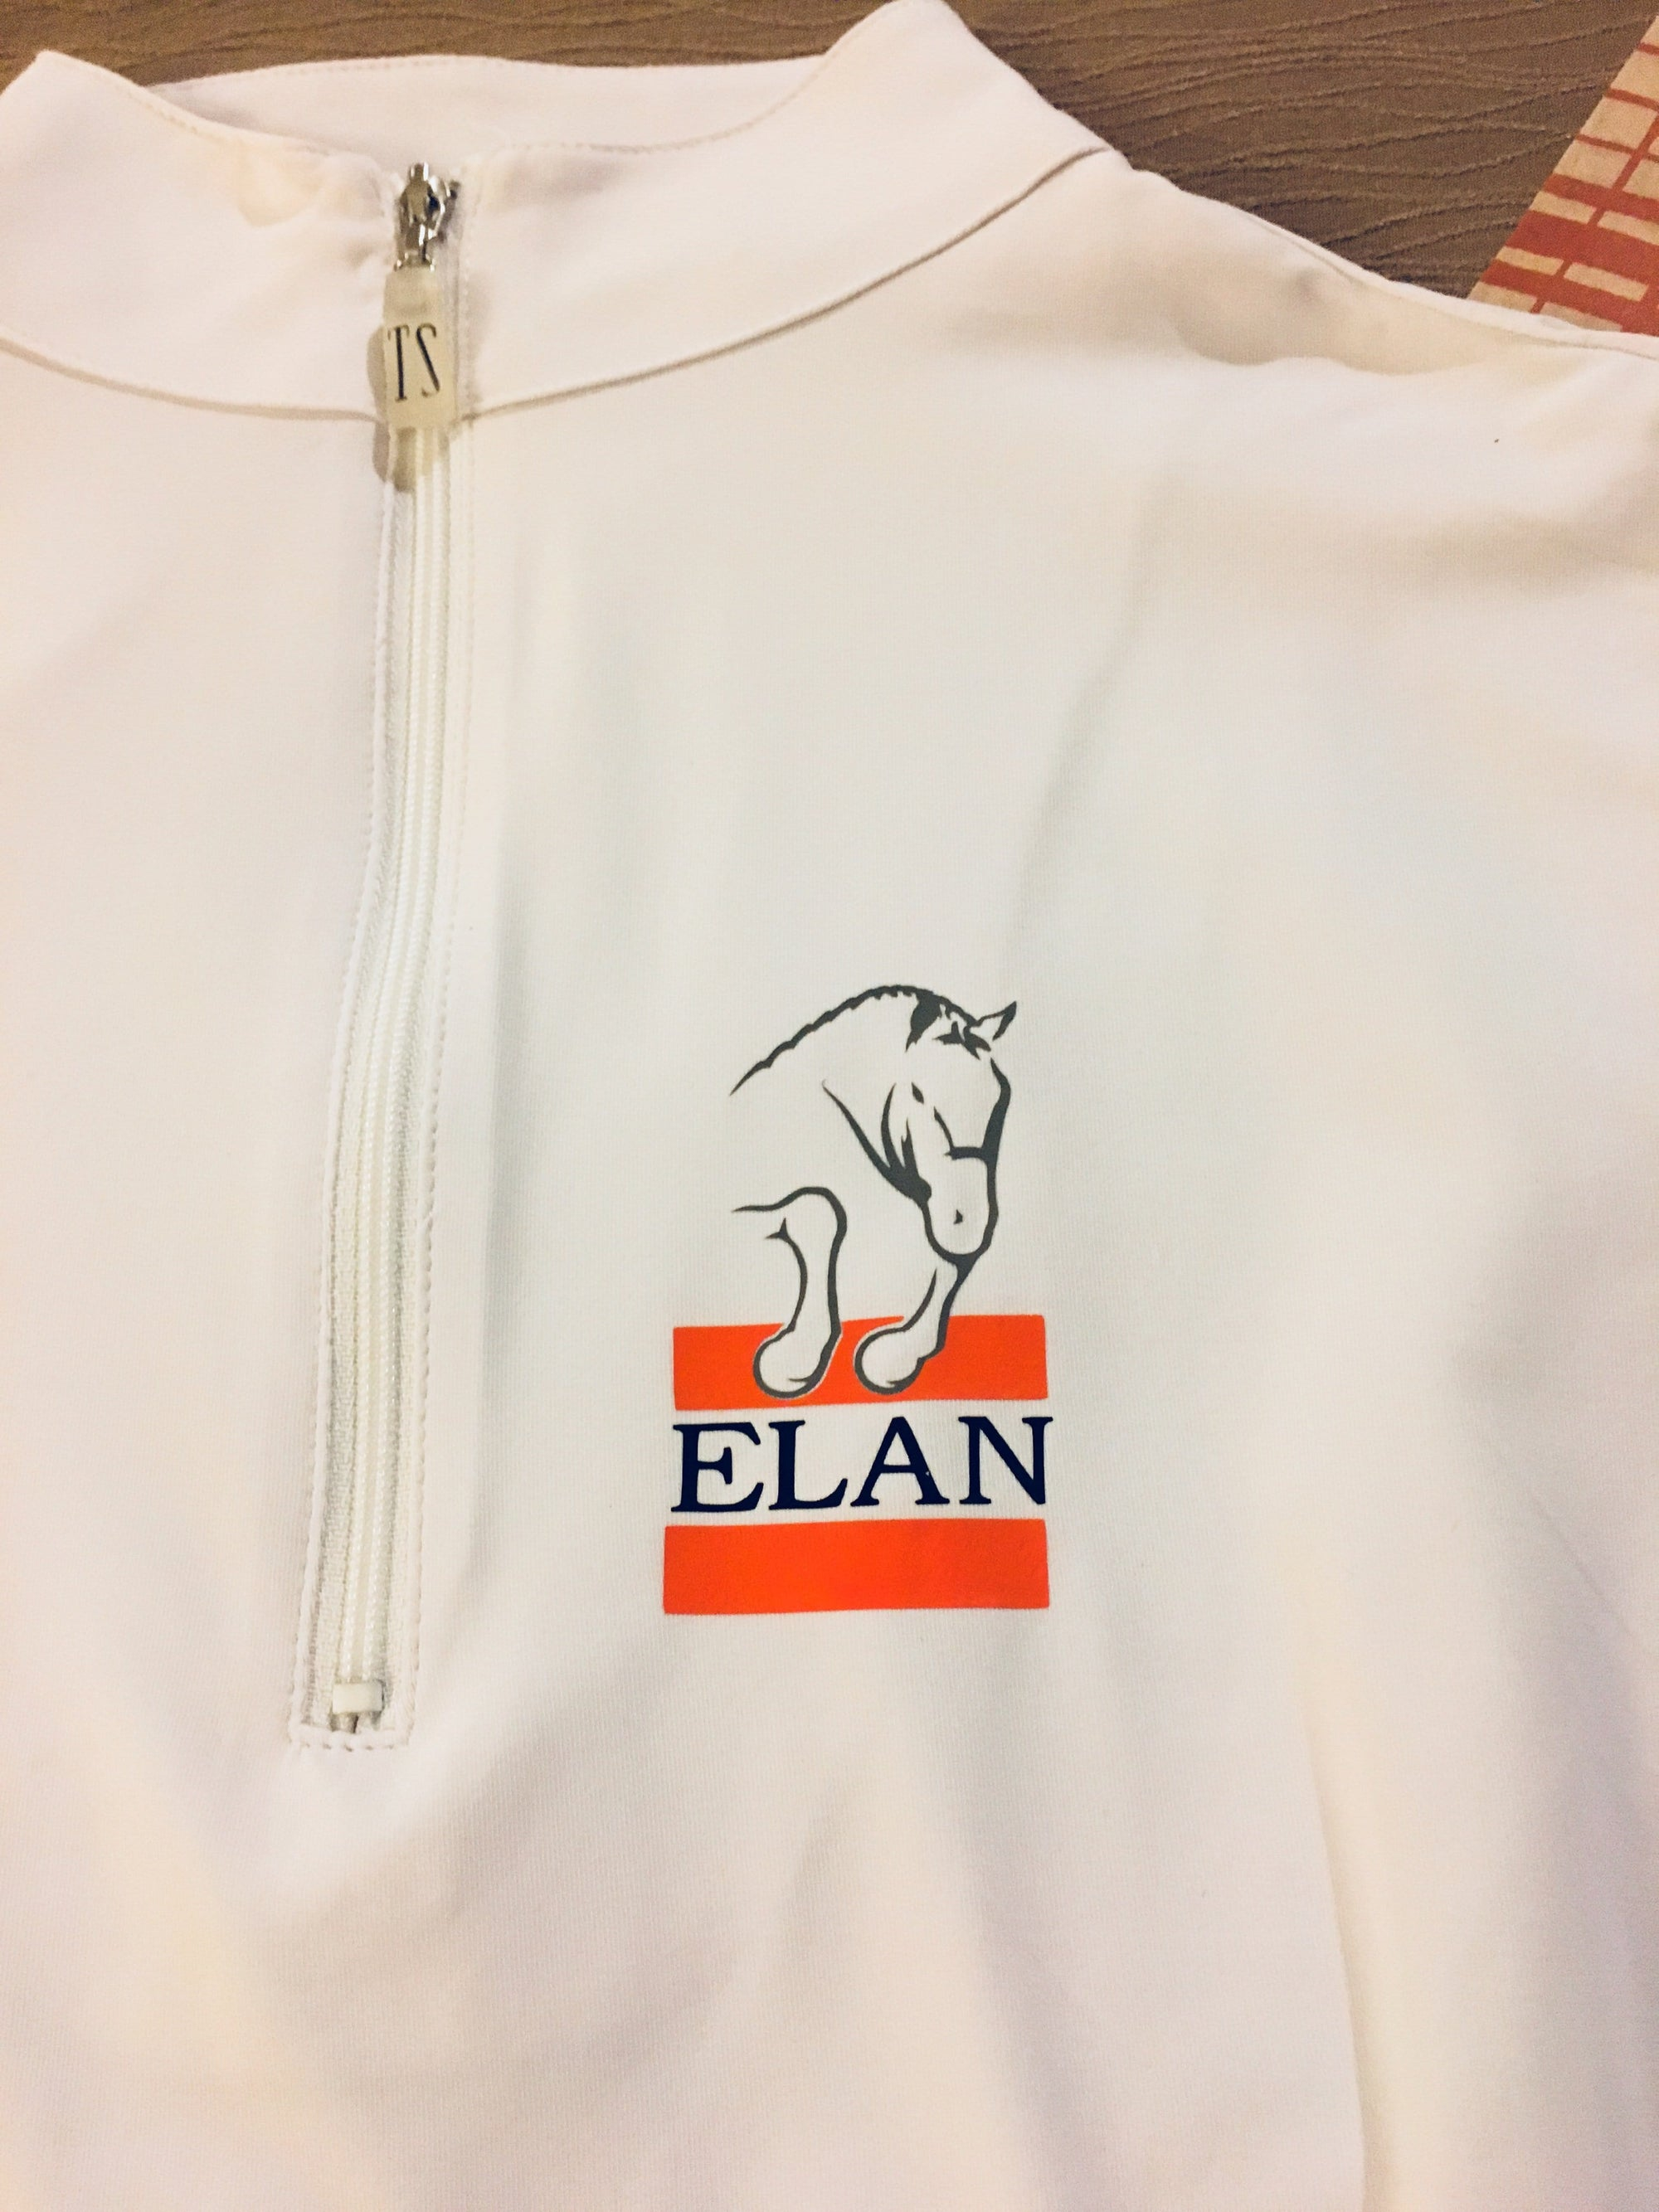 Equestrian Team Apparel Custom Team Shirts Leadline 4/6 Elan equestrian team apparel online tack store mobile tack store custom farm apparel custom show stable clothing equestrian lifestyle horse show clothing riding clothes horses equestrian tack store